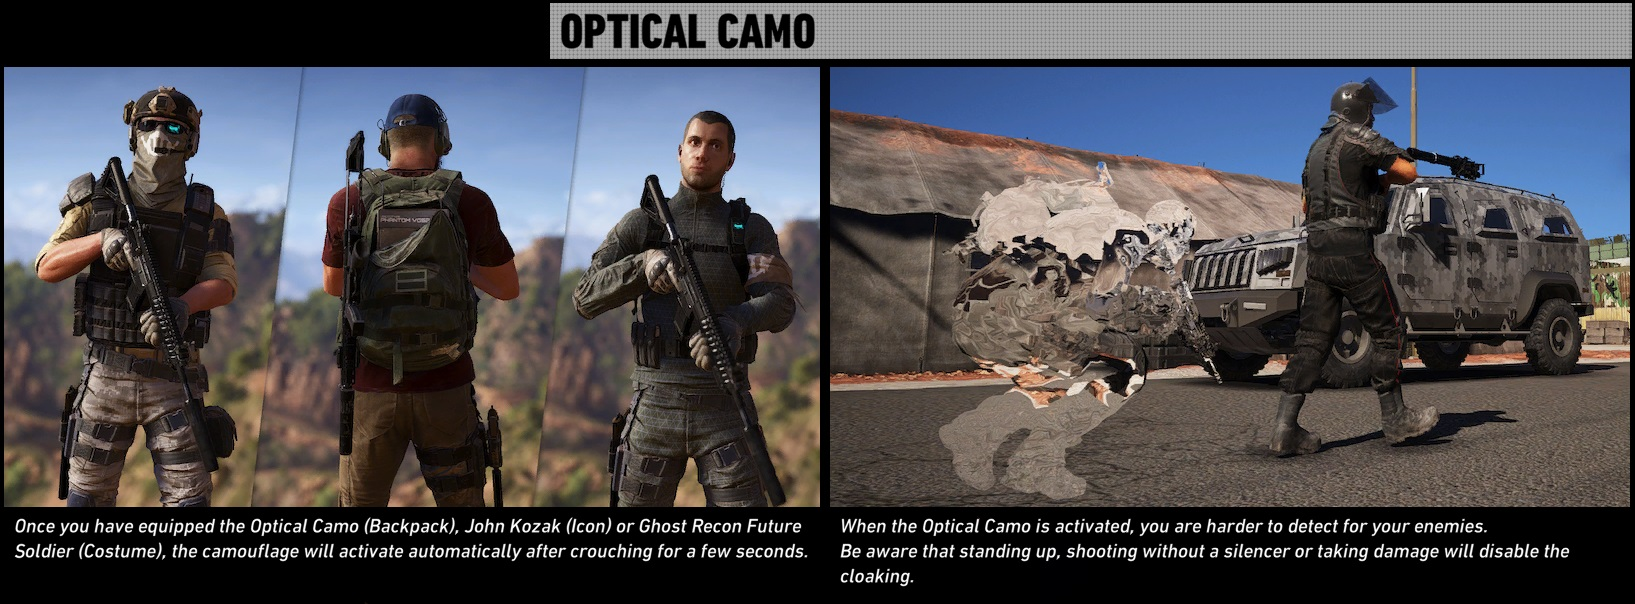 Optical camouflage   Ghost Recon Wiki   FANDOM powered by Wikia